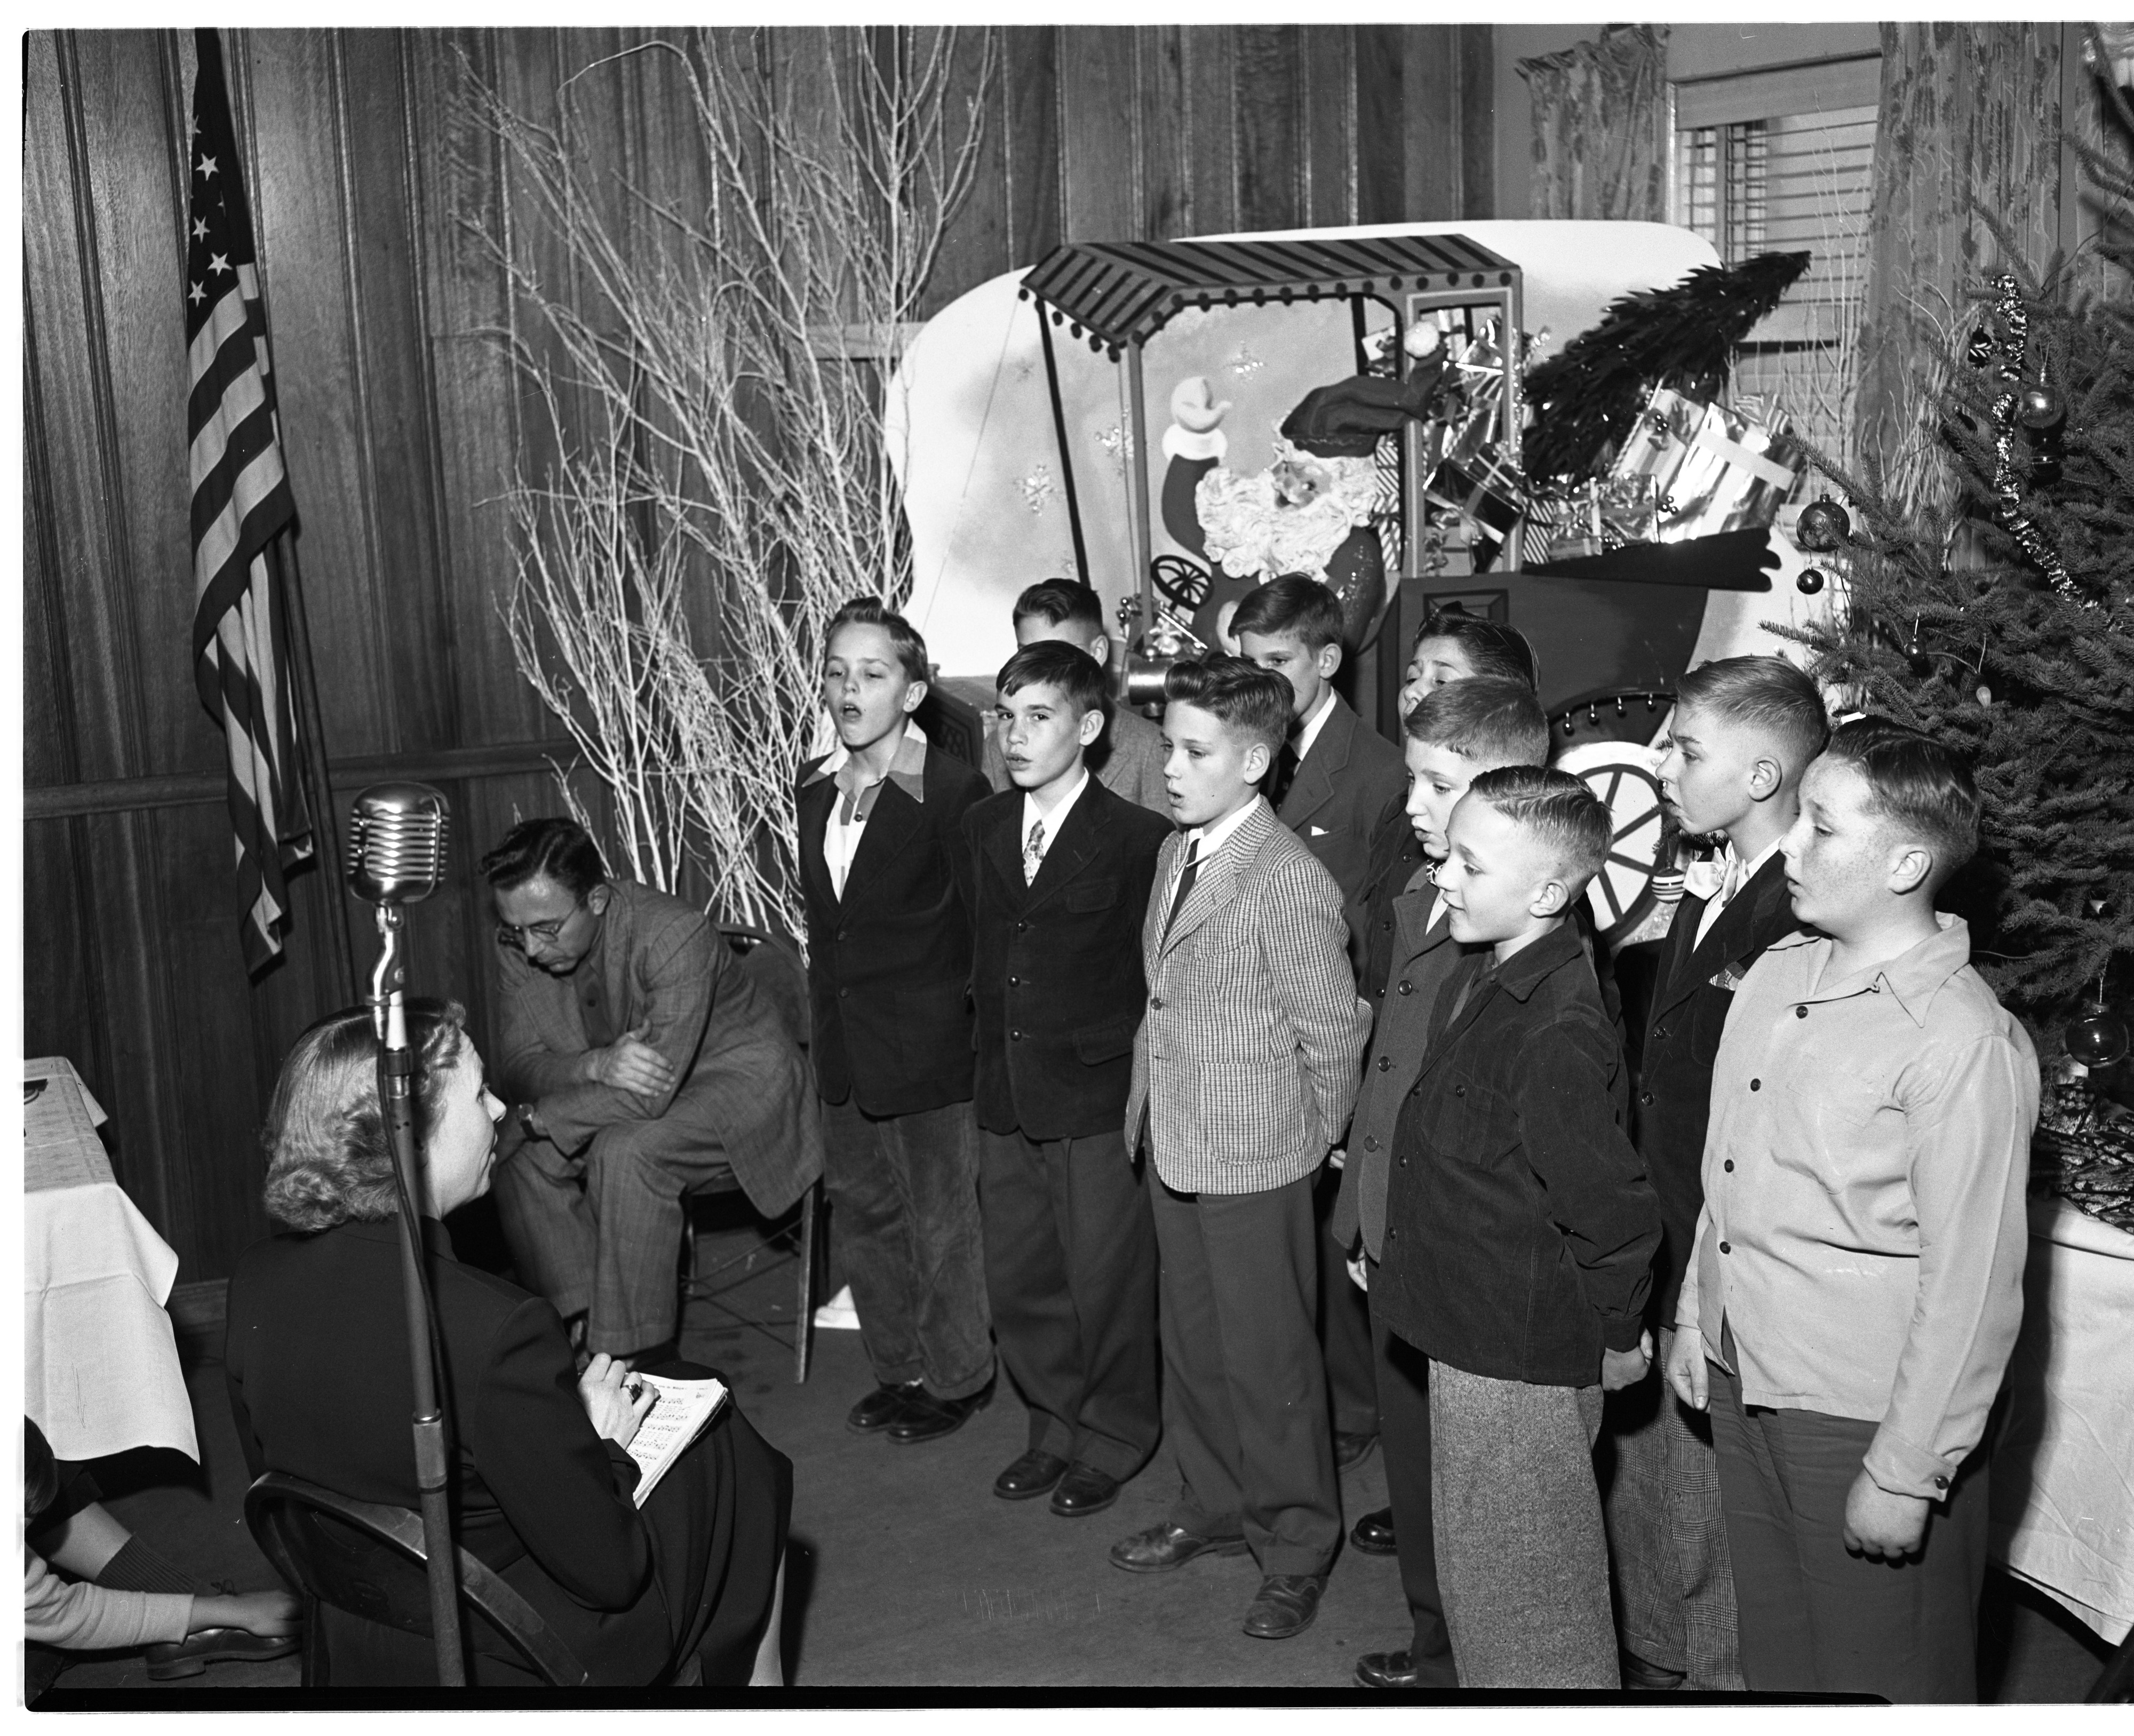 Eberwhite School A Cappella Choir Sings at Optimist Club Christmas Party, December 1951 image